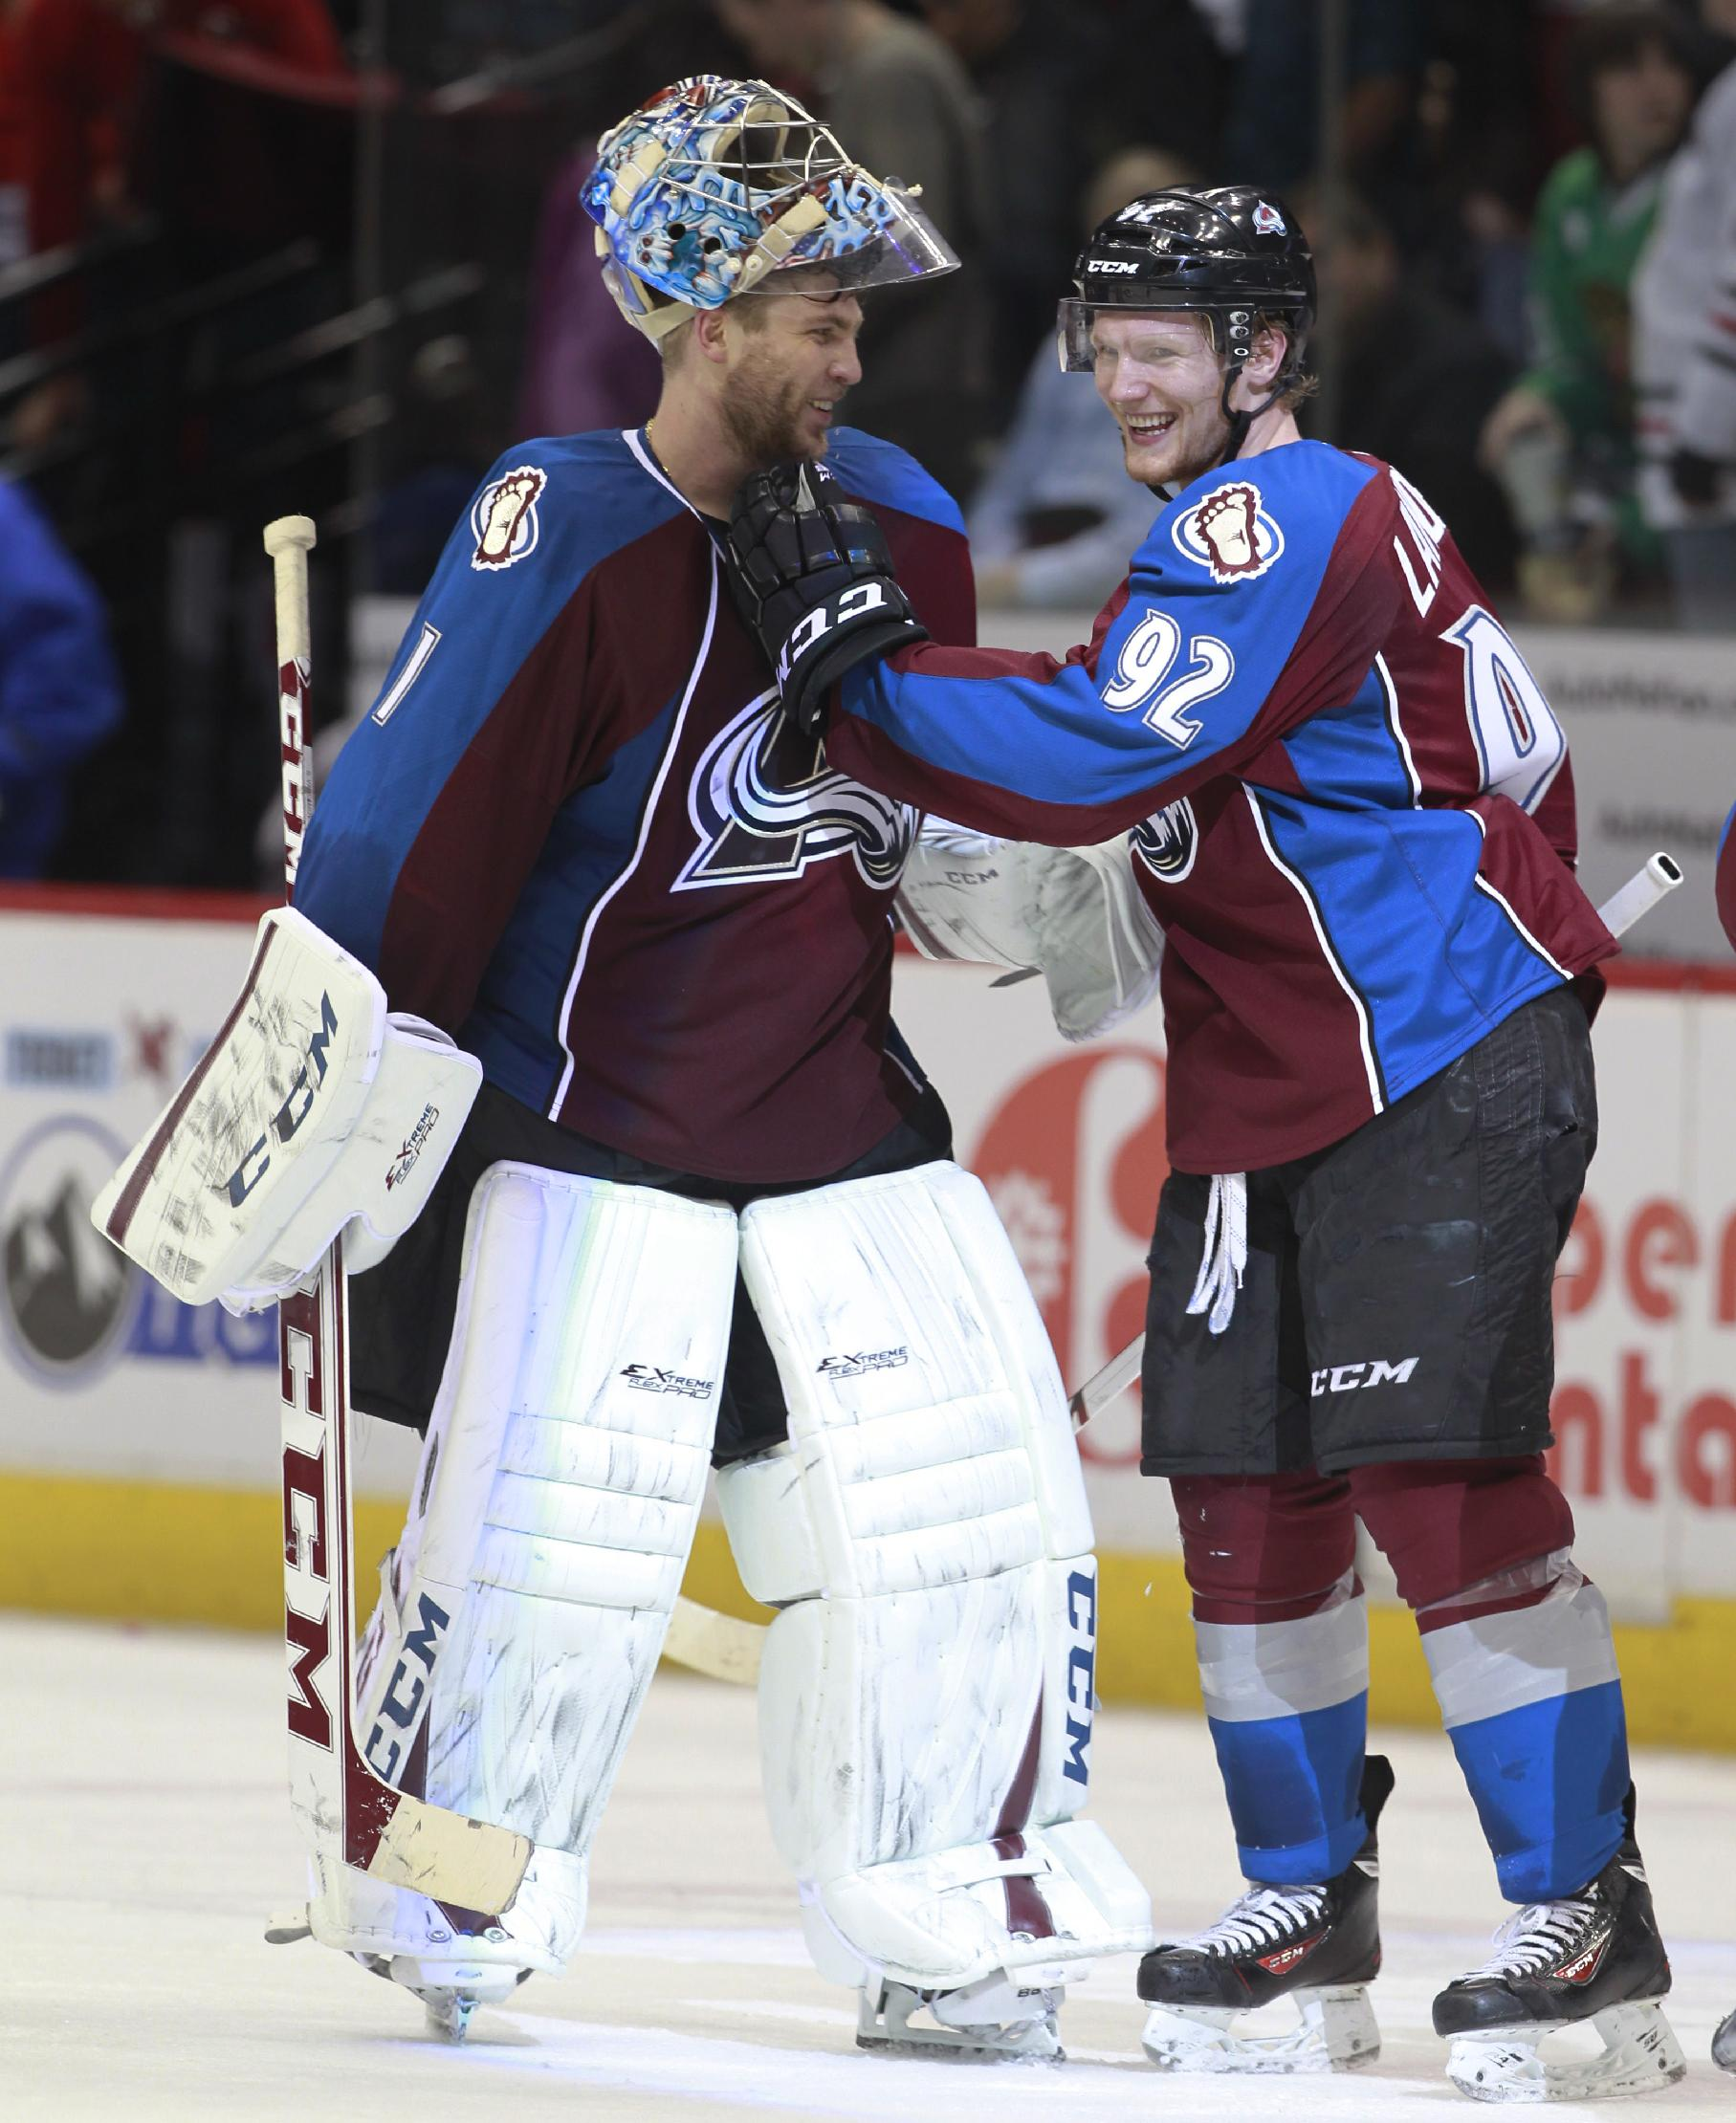 Colorado Avalanche goalie Semyon Varlamov, left, of Russia, celebrates with left wing Gabriel Landeskog, of Sweden, after the Avalanche's 3-2 victory over the Chicago Blackhawks in an NHL hockey game in Denver on Wednesday, March 12, 2014